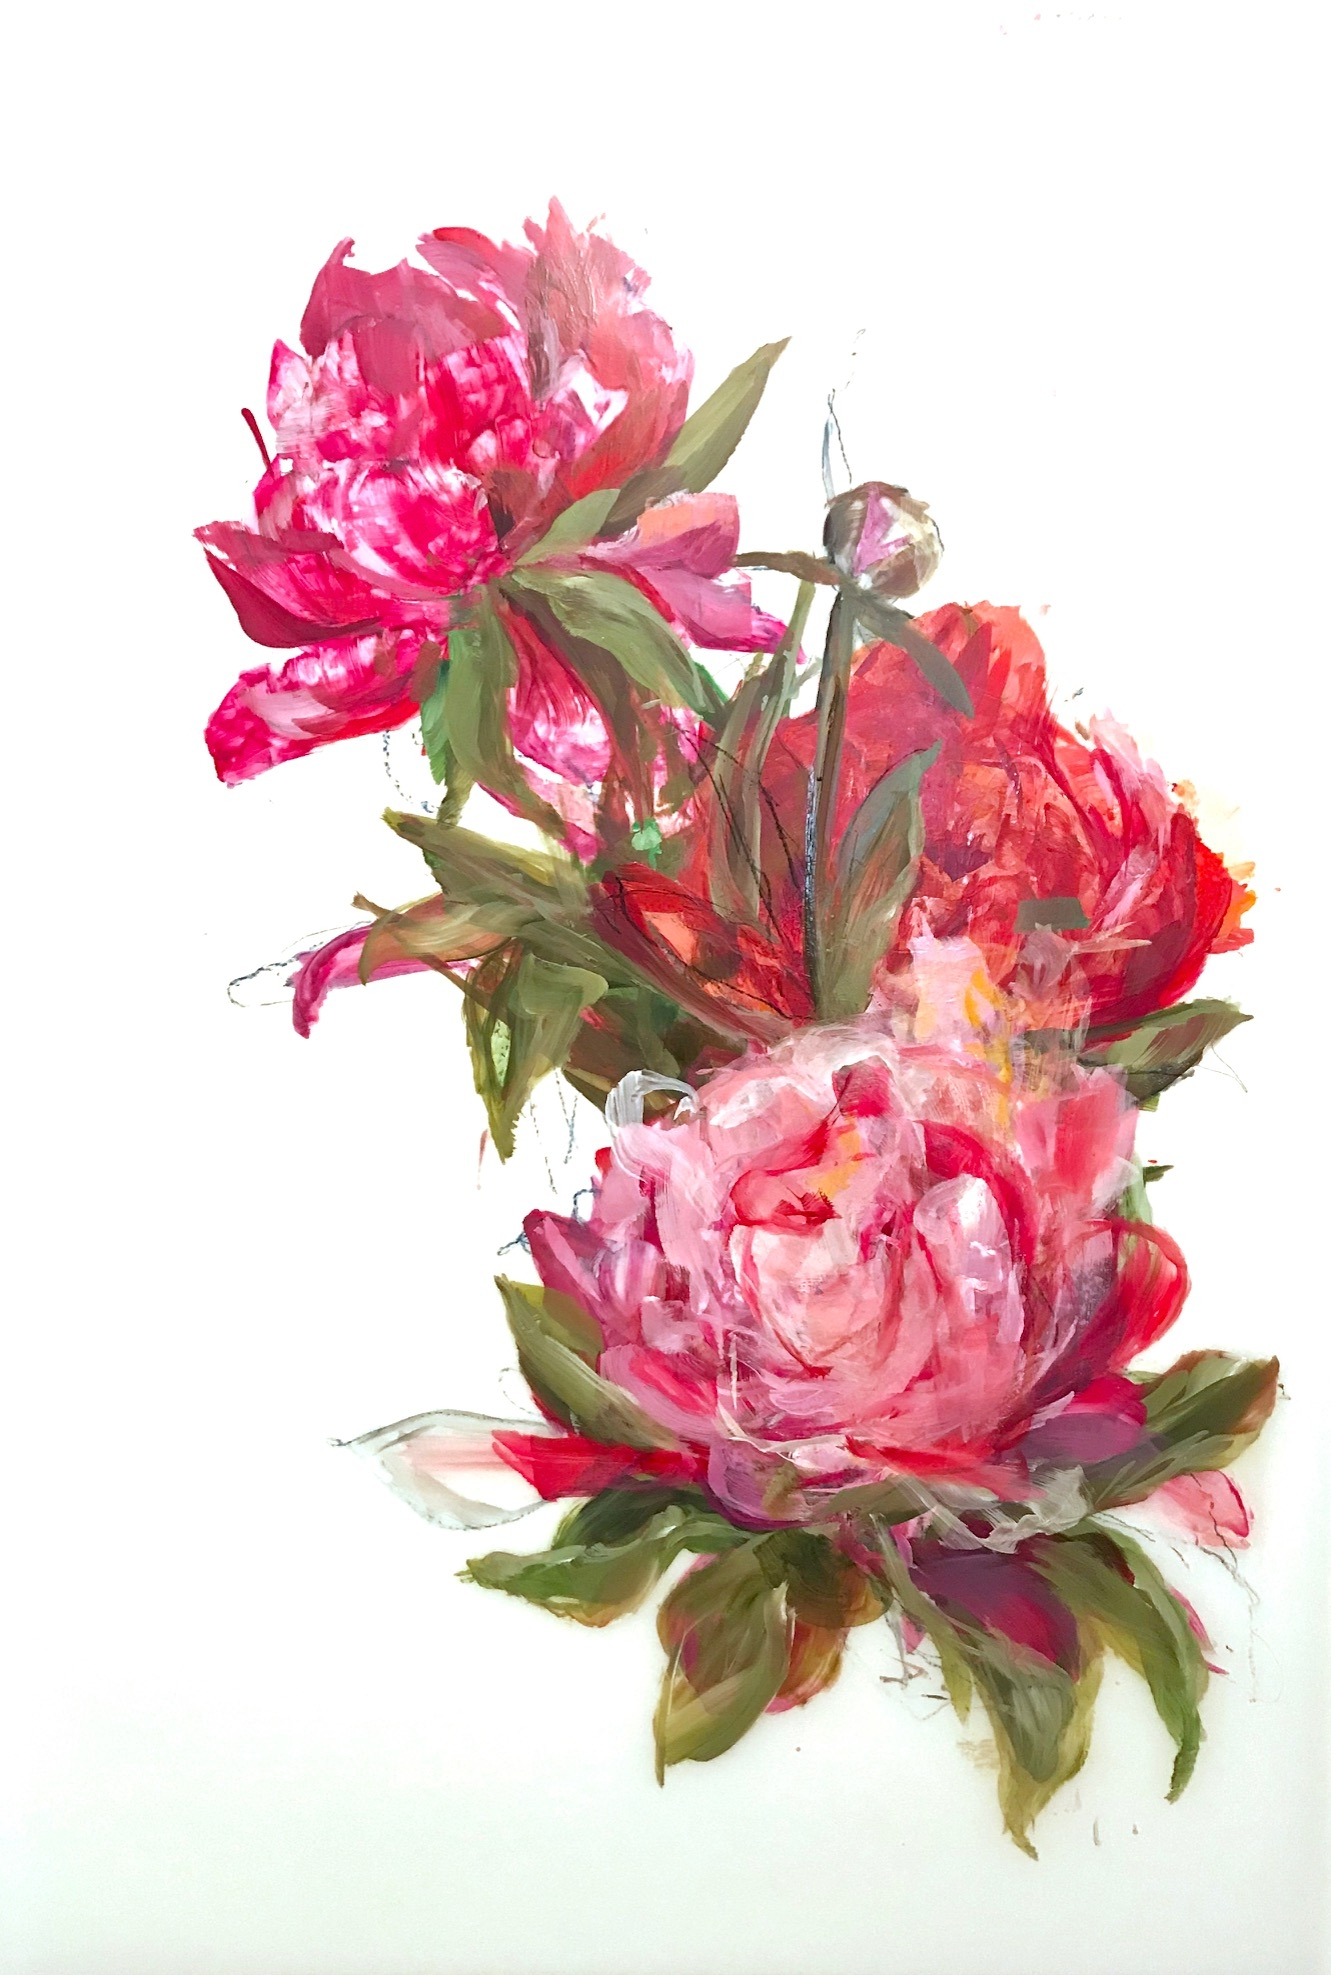 Magenta Peonies 3 by Madeleine Lamont